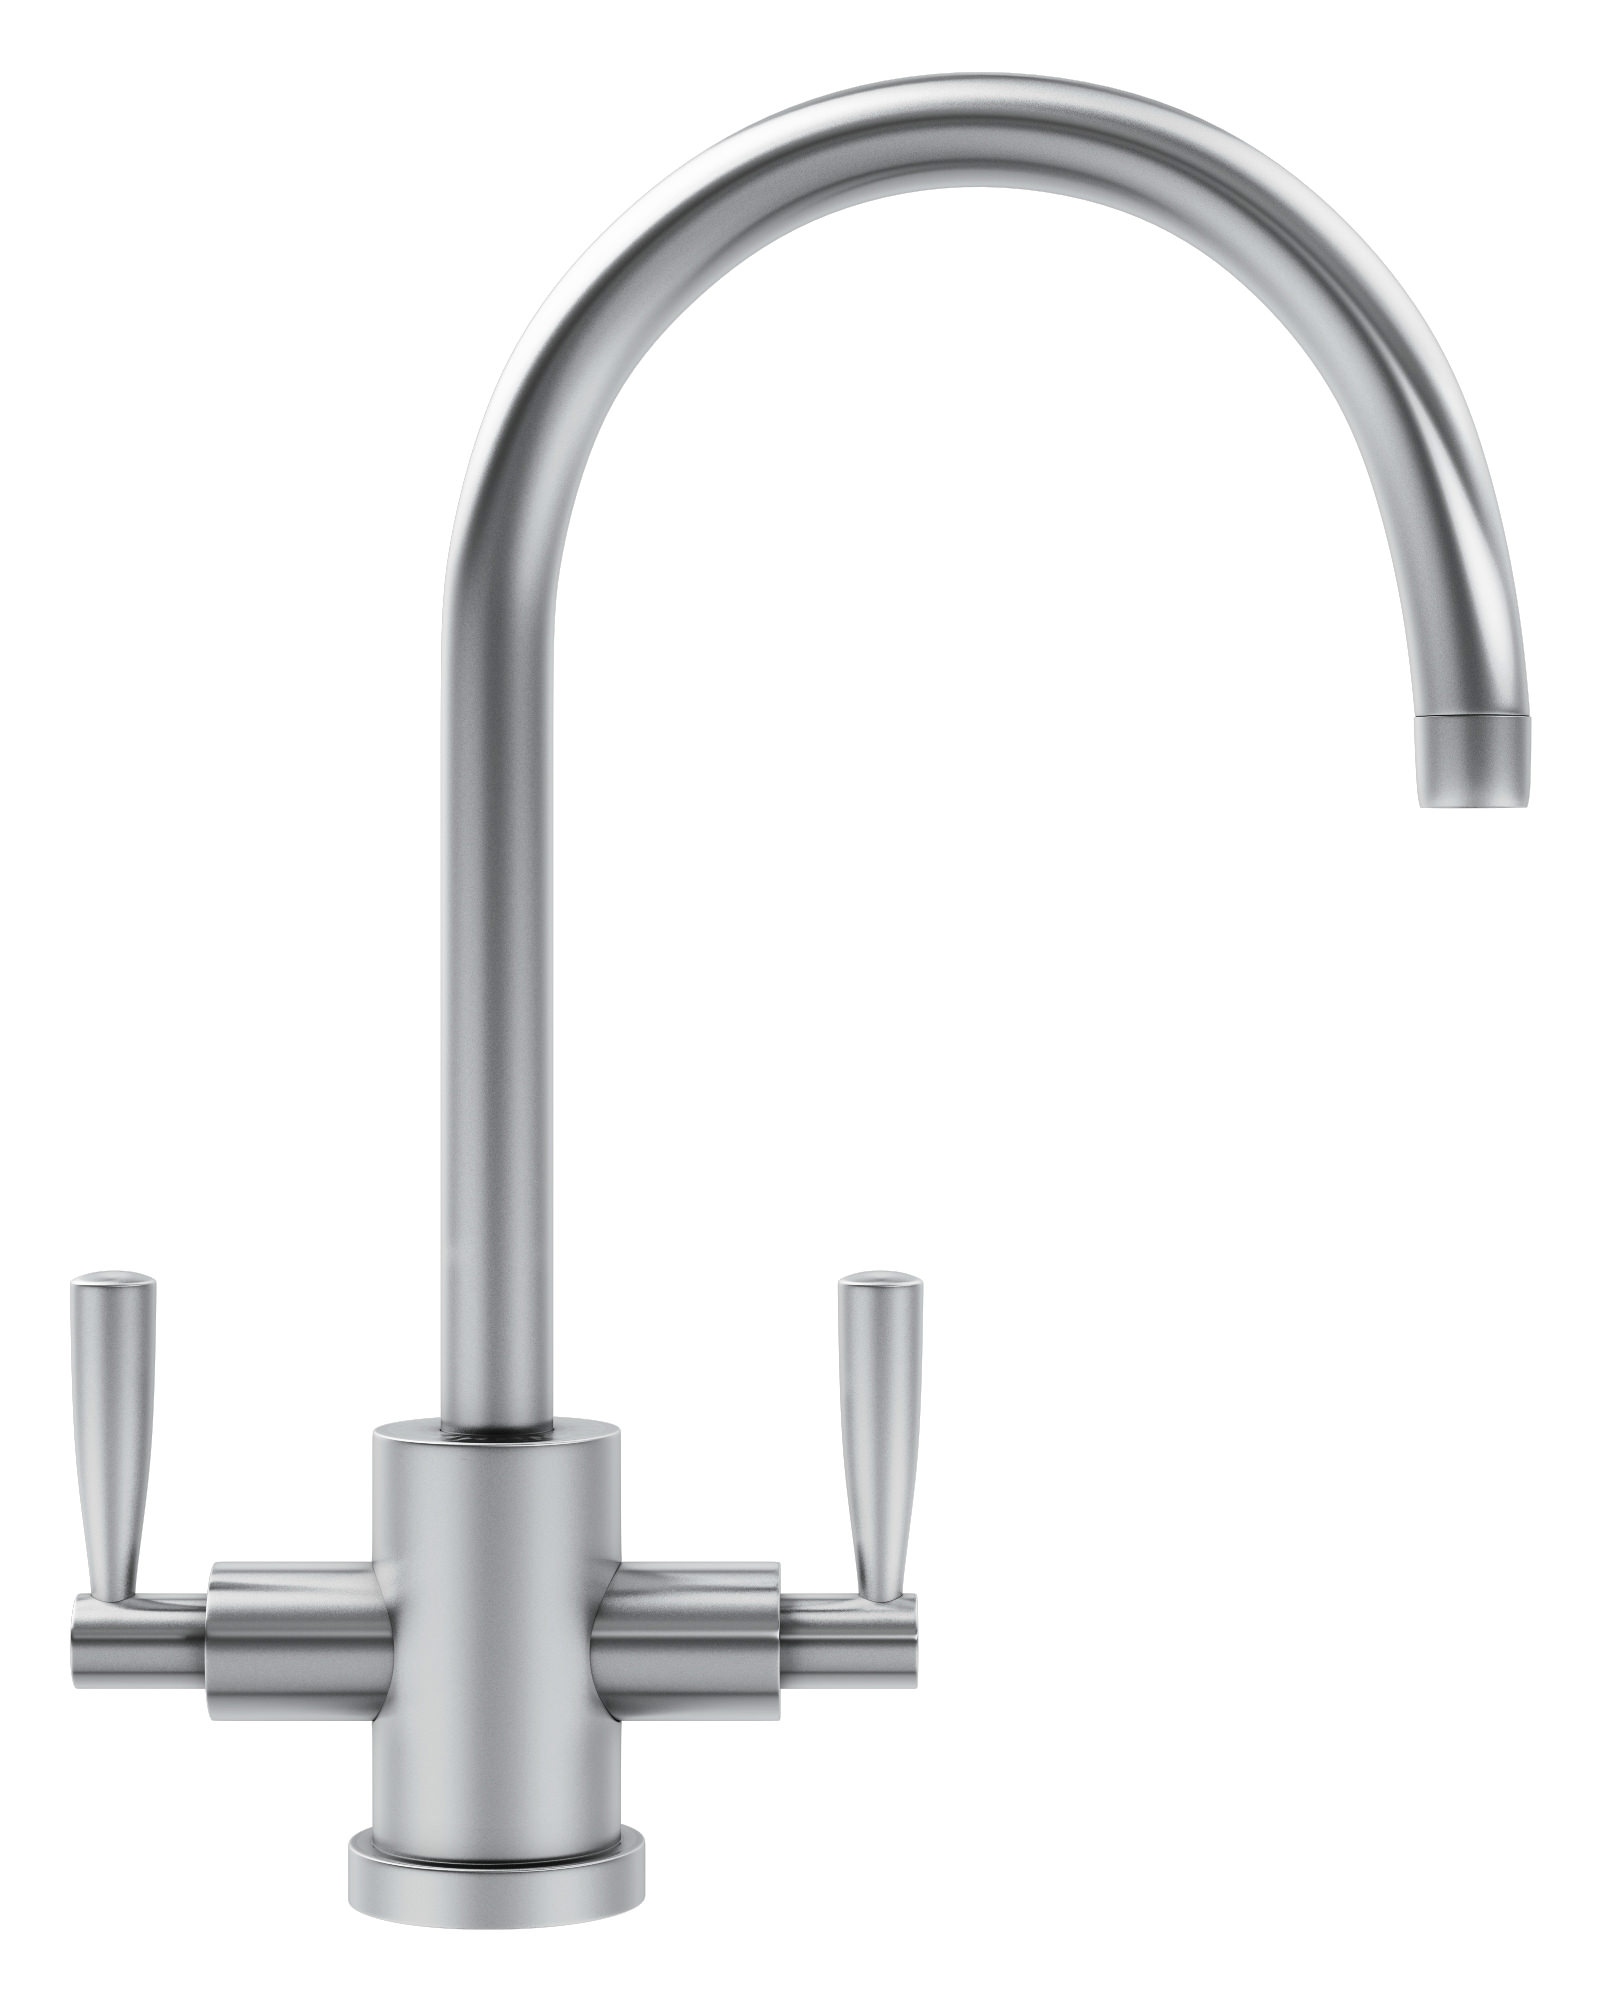 Franke Sinks And Taps : ... taps kitchen mixer taps franke olympus kitchen sink mixer tap